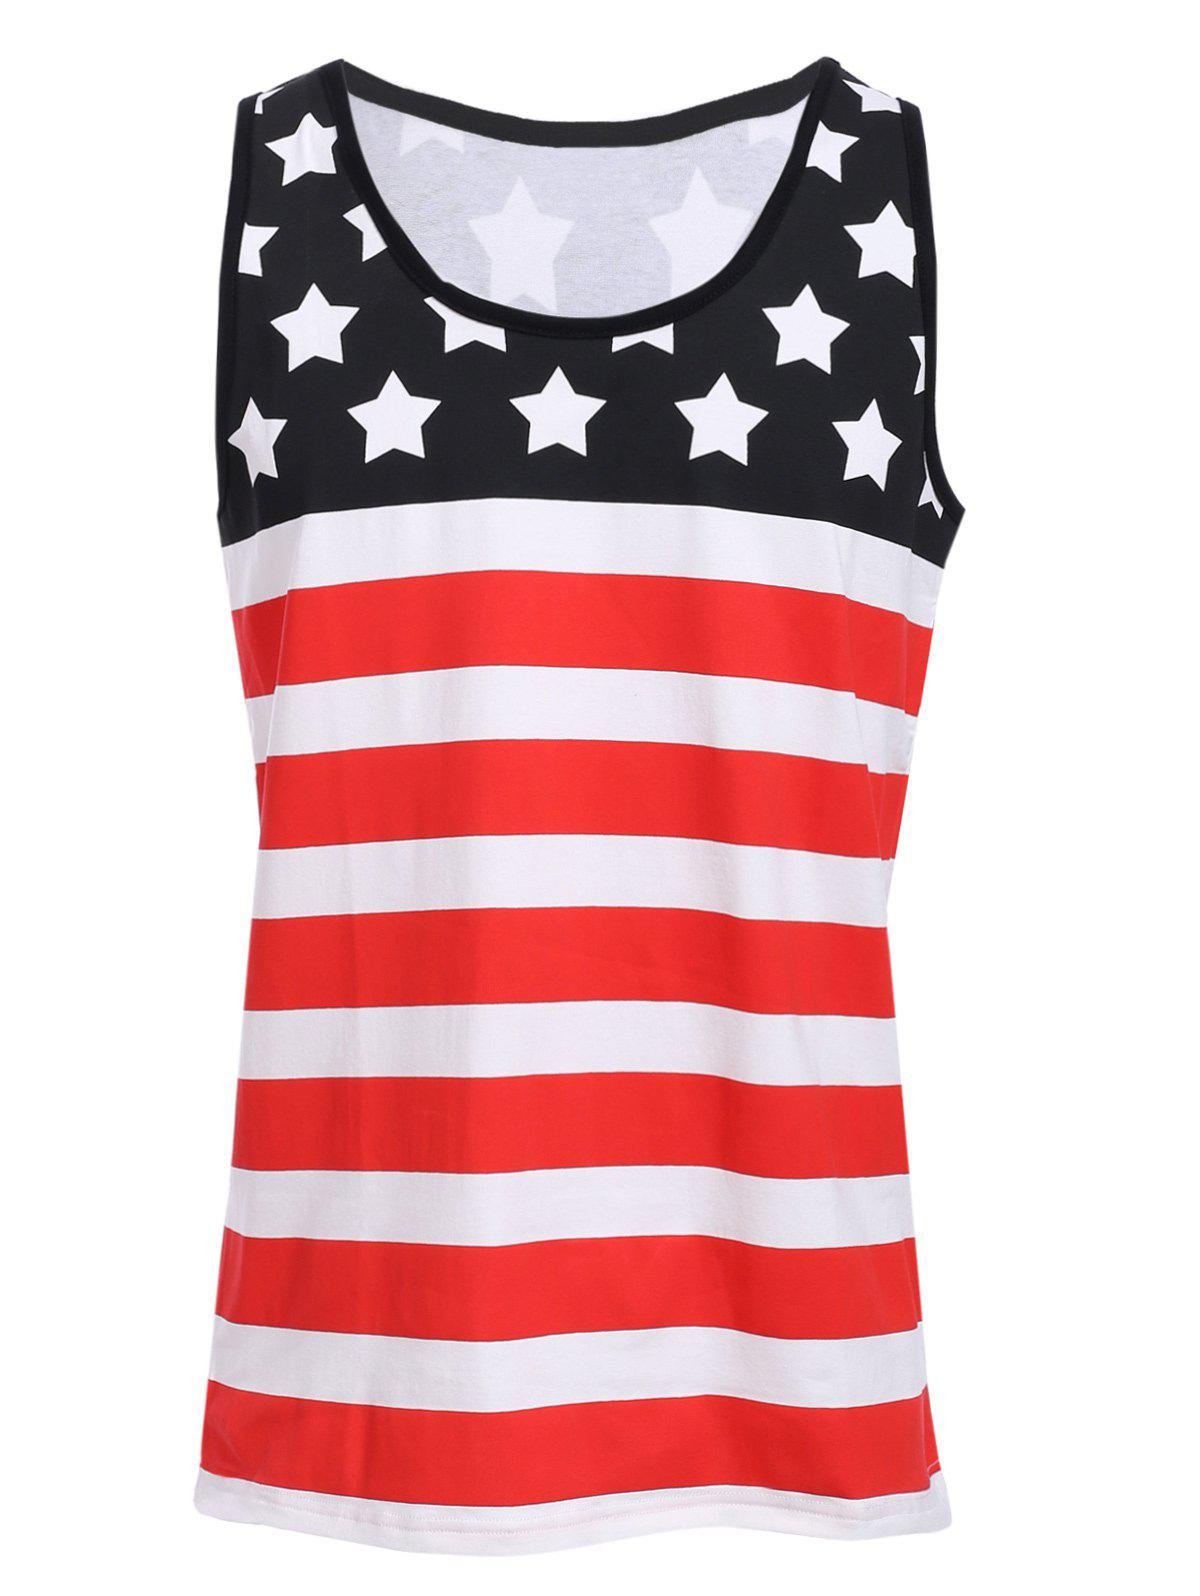 Best Sports Round Neck Stripes Star Print Color Block Tank Top For Men